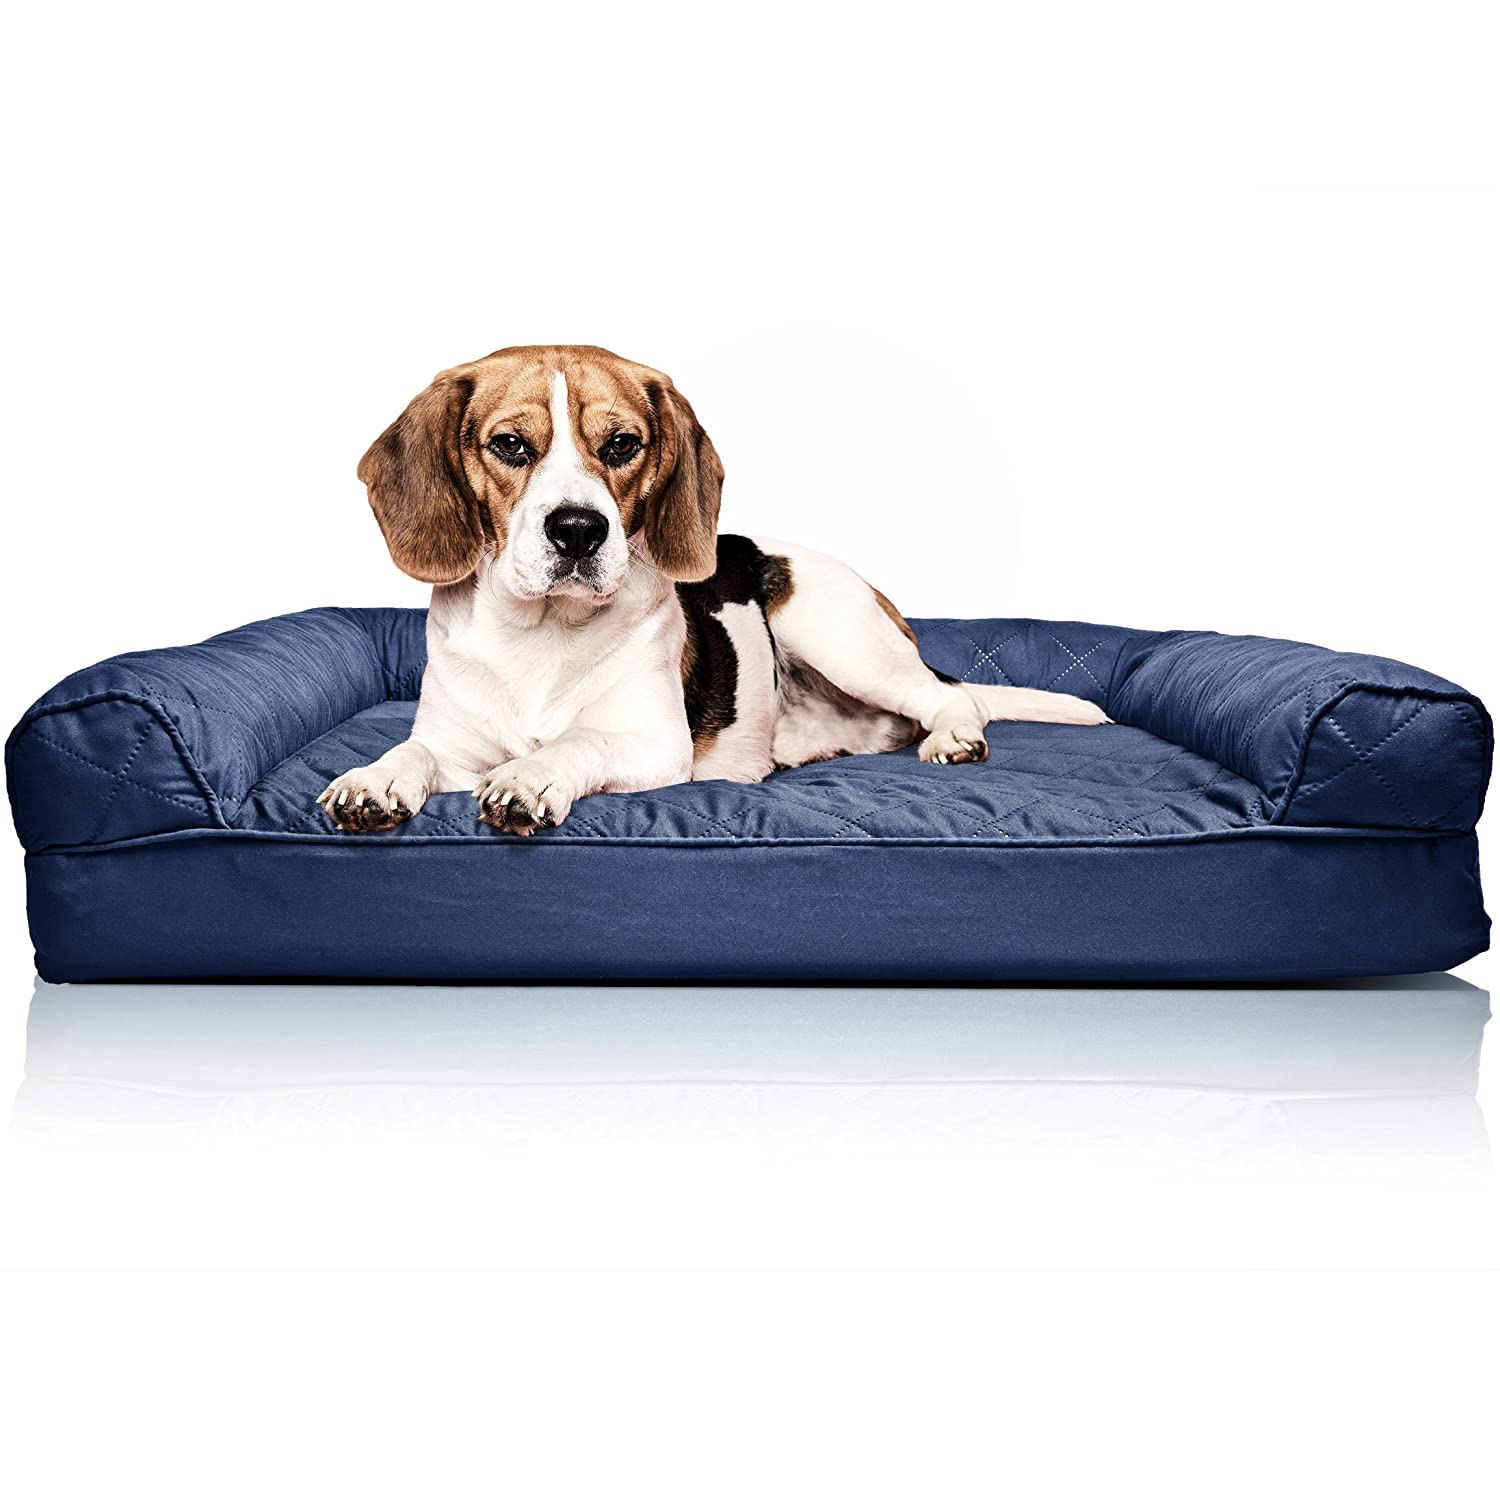 Navy Medium Navy Medium FurHaven Pet Dog Bed   Orthopedic Quilted Sofa-Style Couch Pet Bed for Dogs & Cats, Navy, Medium